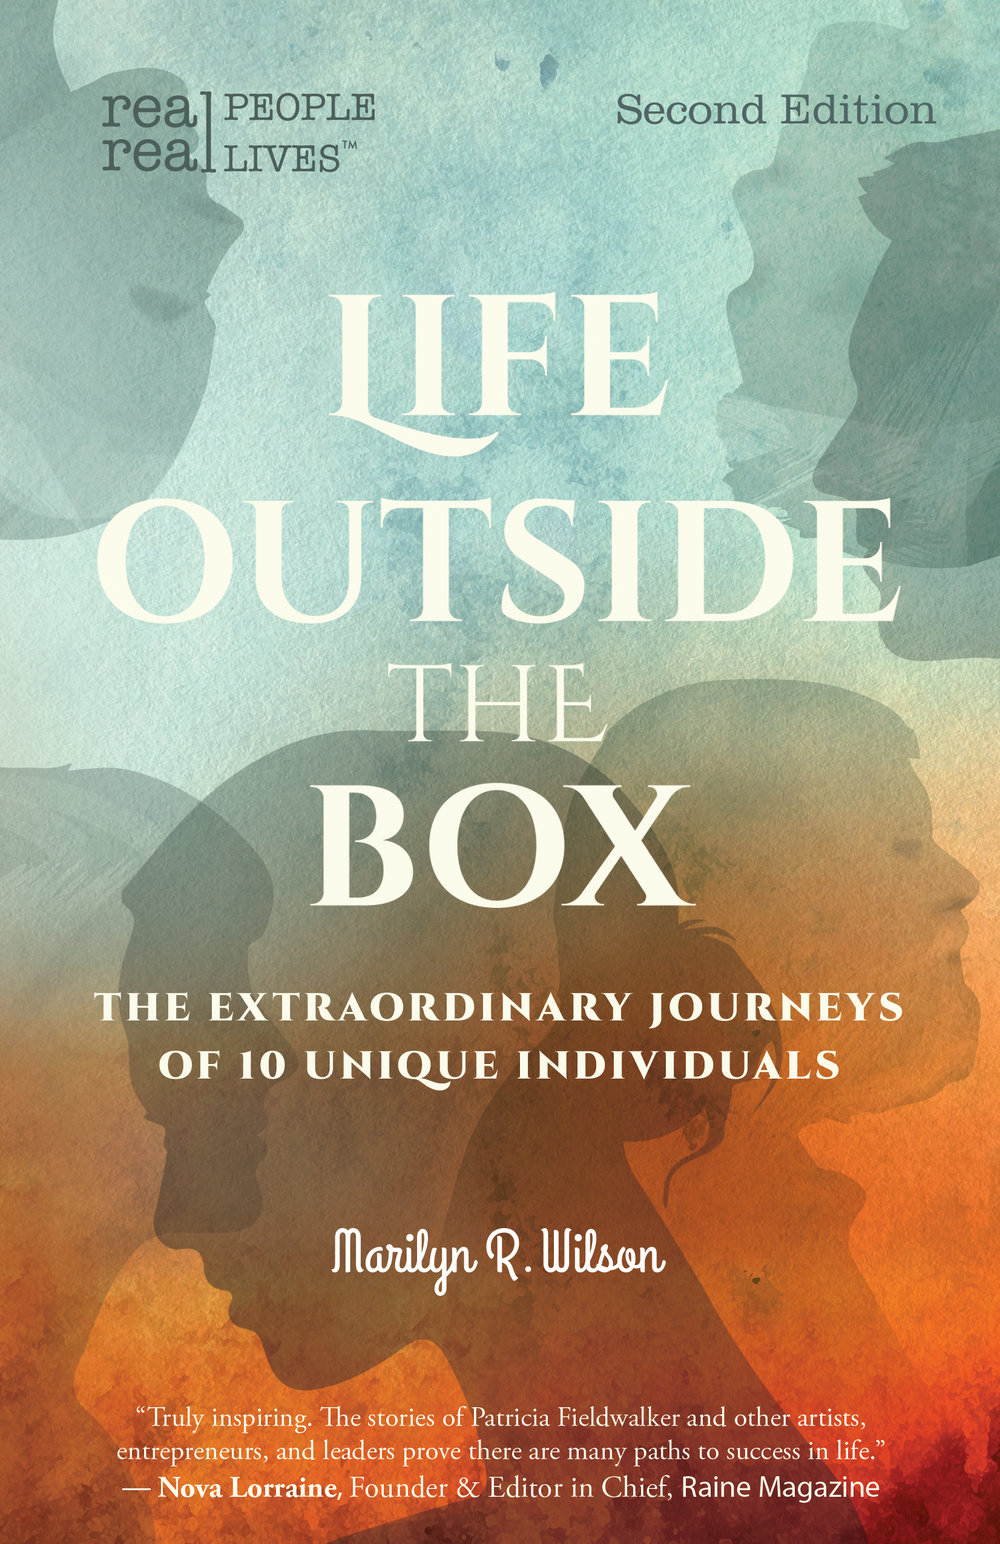 Life Outside the Box - The Extraordinary Journeys of 10 Unique Individuals, Second EditionReal stories about real people to entertain, inspire, and challenge you.This 2nd edition offers new content - the author's personal reflections on each interviewee.Get inspired to step out of your box and embrace your potential. From the corporate world, to the arts, to working with the disenfranchised, the message is clear: there is no such thing as a normal way to live your life and no one right solution to any problem.Selected from over a hundred interviews, the stories shared here open a window on the journeys of seven women and three men who have charted their own paths, including Ruthie Davis—top US luxury shoe designer and the winner of the 2014 AAFA Footwear Designer of the Year Award; and Geir Ness whose perfume is a staple in Nordstrom, Disney World, and on Disney Cruise Lines.Enjoy a glimpse behind the scenes into the unique ways these individuals have chosen to deal with life's challenges and how they define success in their careers.Check out this Q and AAvailable in Canada at Amazon.caAvailable in the US at Amazon.com and Barnes&NobleCheck out 25 reviews on Goodreads https://www.goodreads.com/book/show/23094434-life-outside-the-box